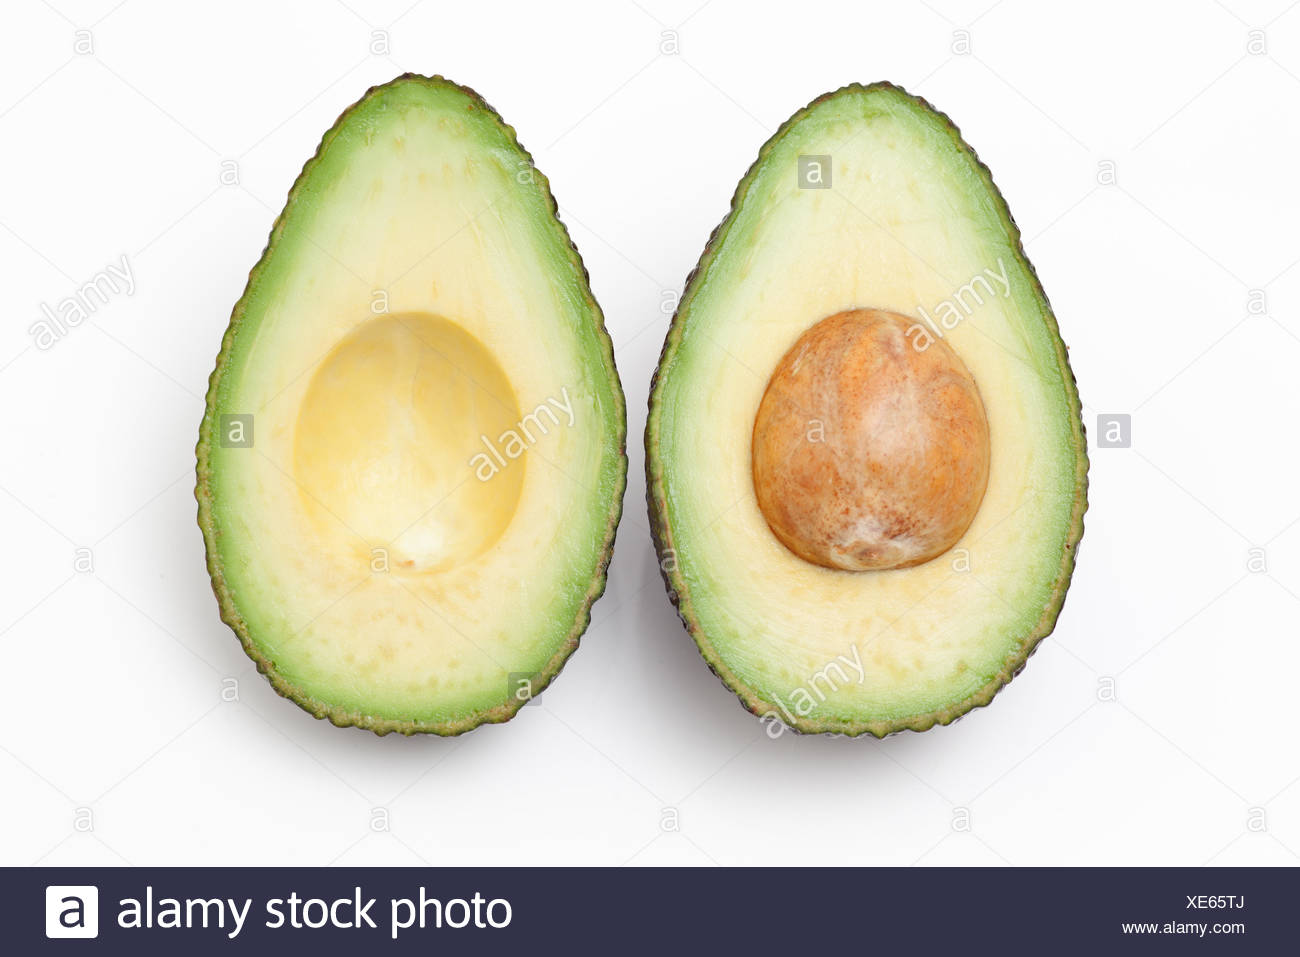 Close up of an Avocado cut in half - Stock Image